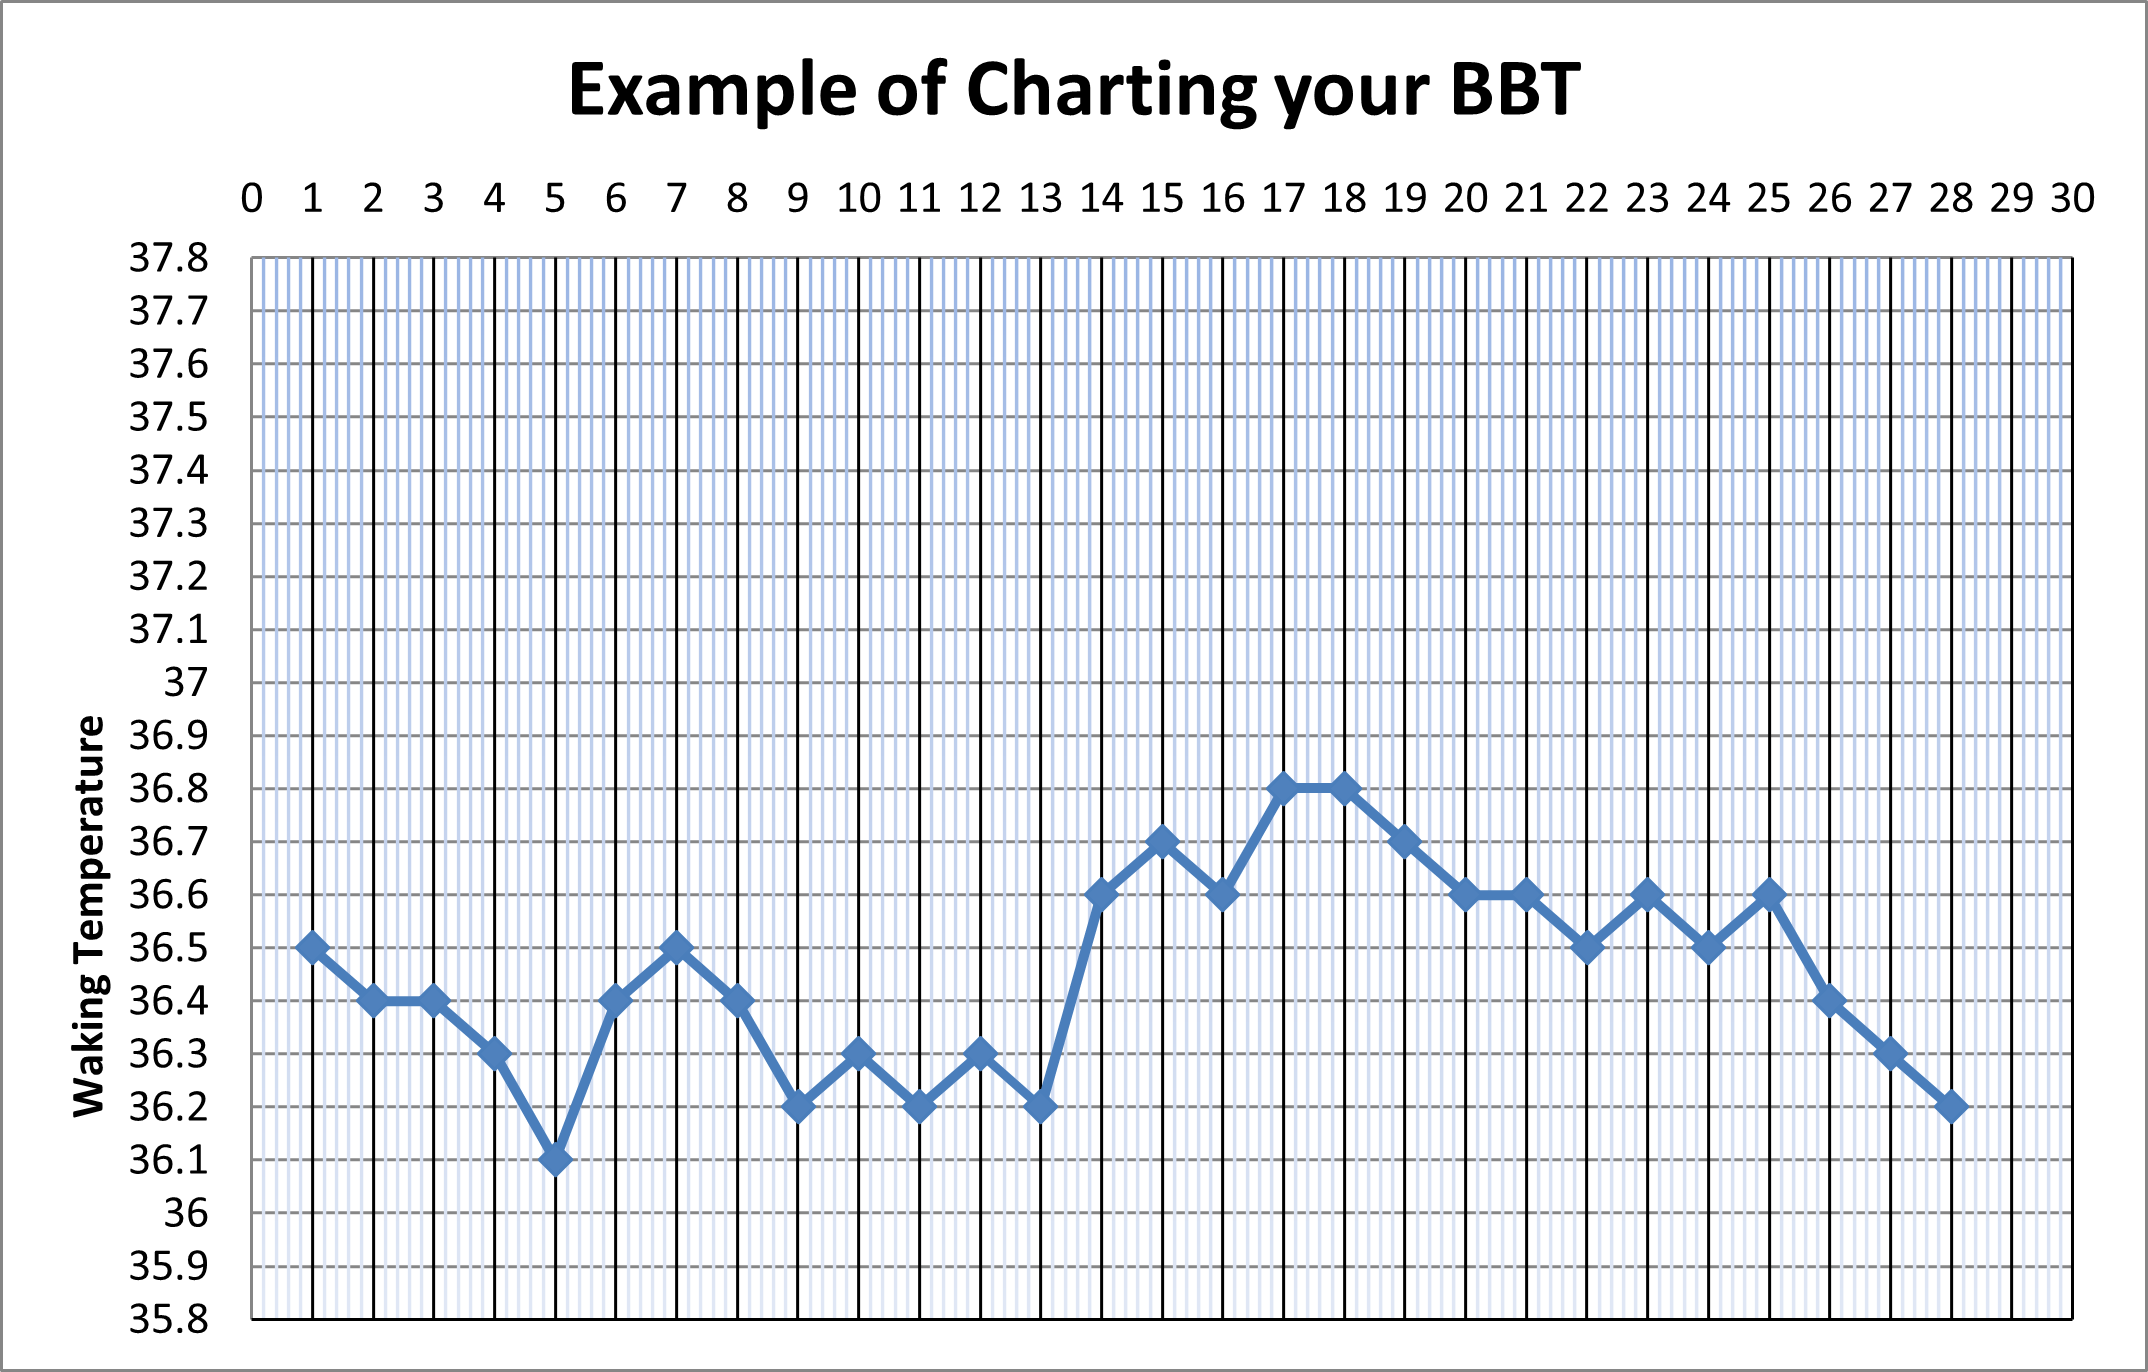 Example of charting your BBT